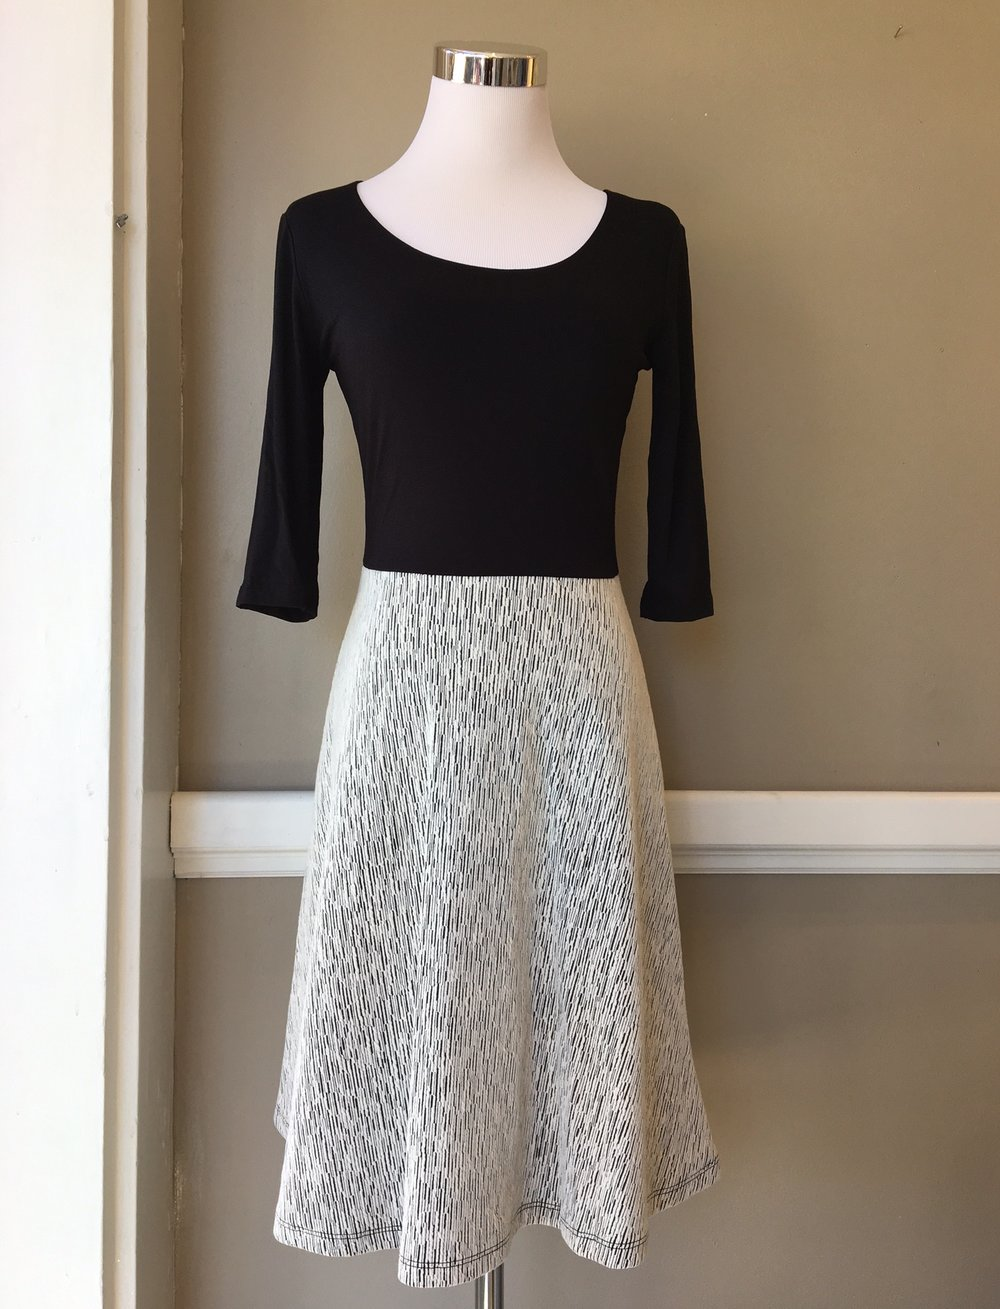 Black and White Dress ($45)